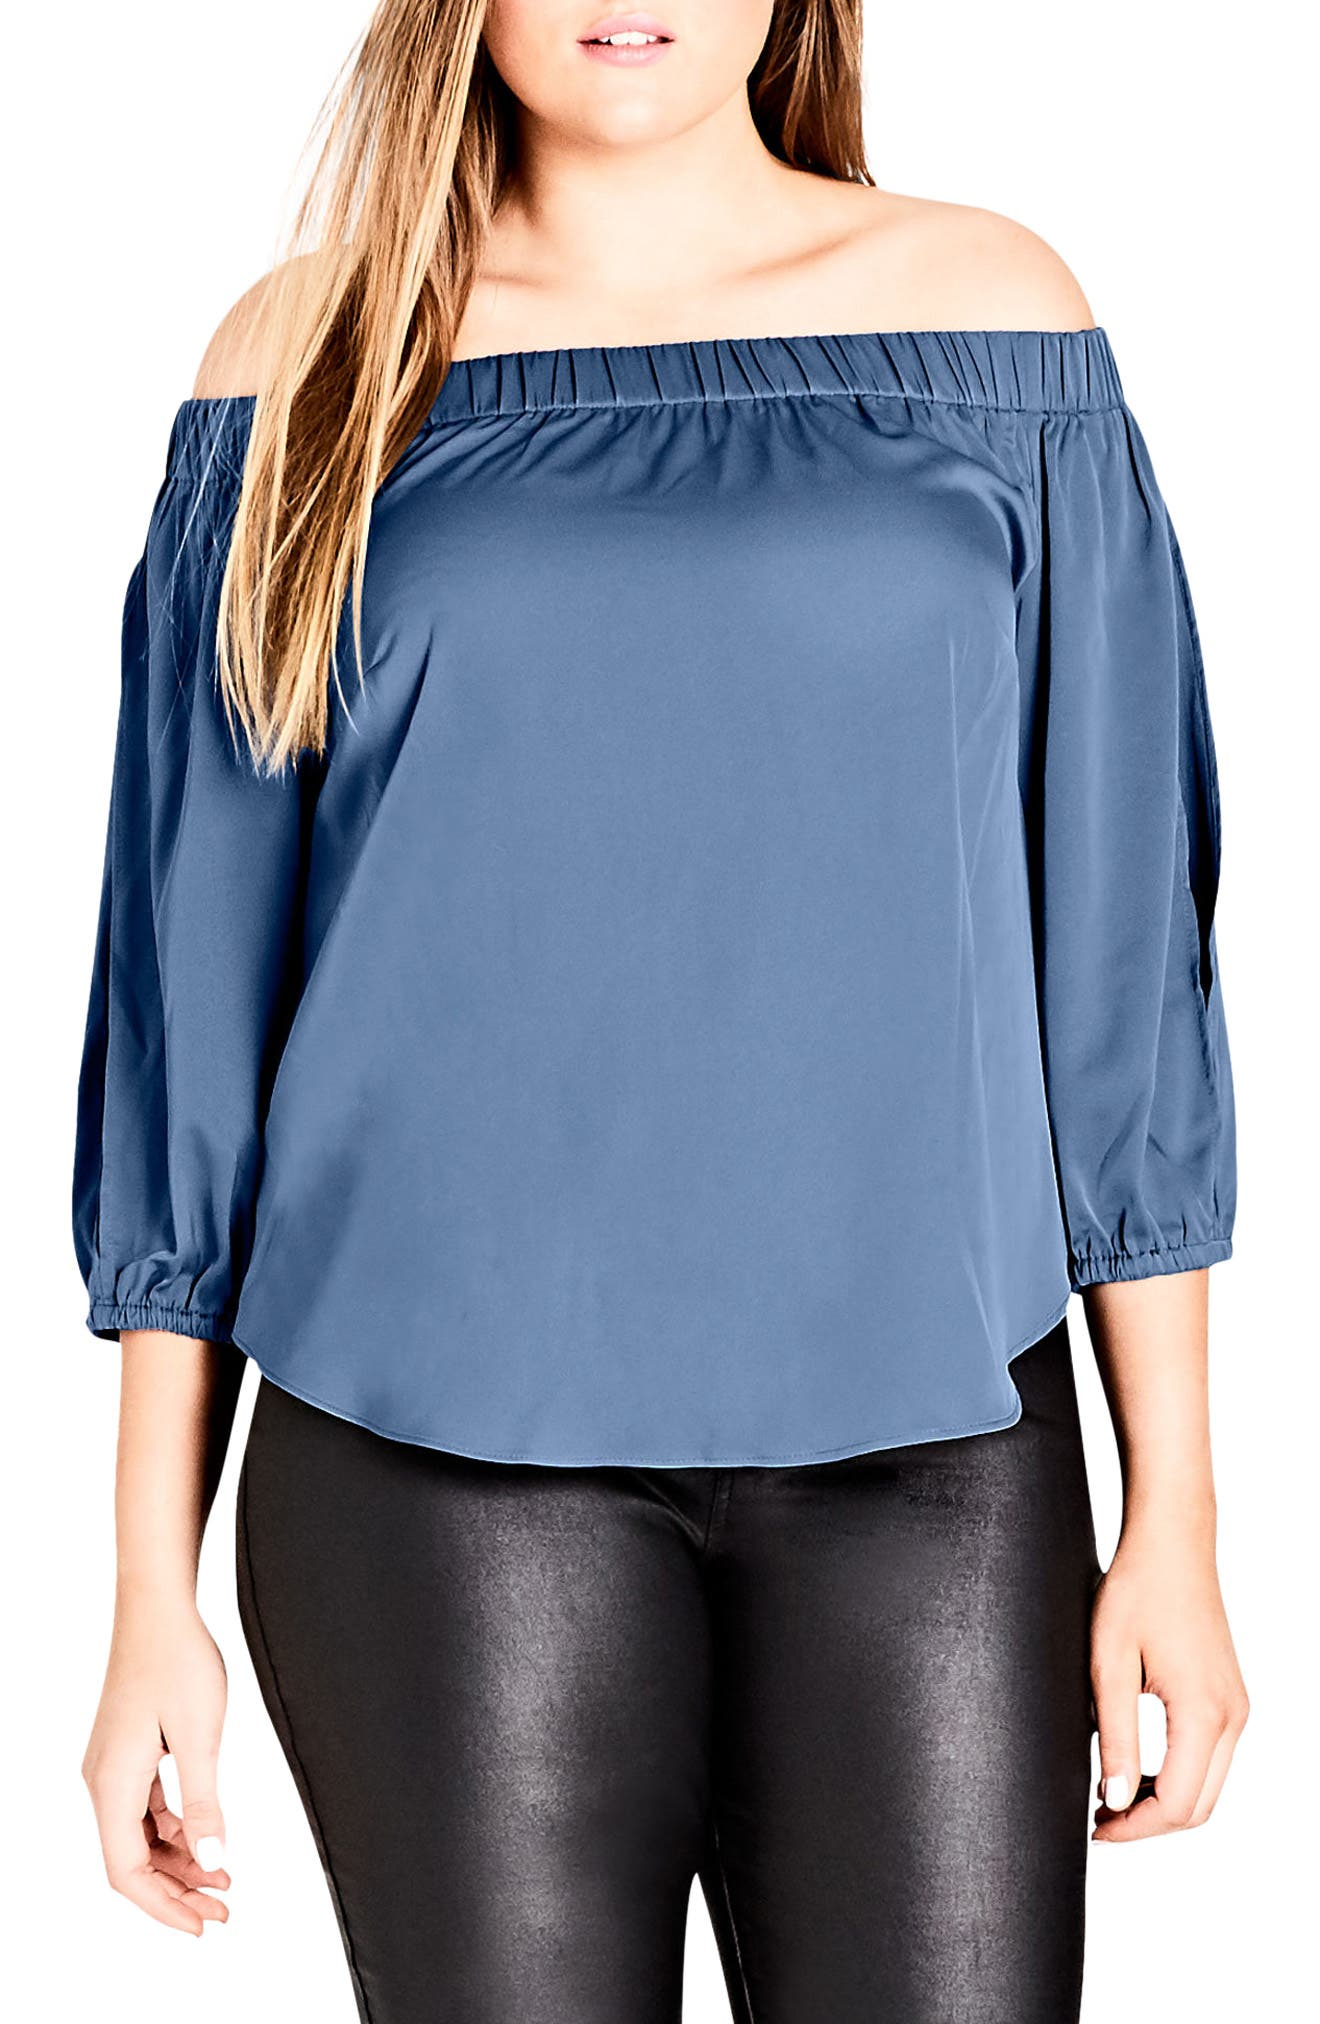 Alternate Image 1 Selected - City Chic Off the Shoulder Satin Top (Plus Size)